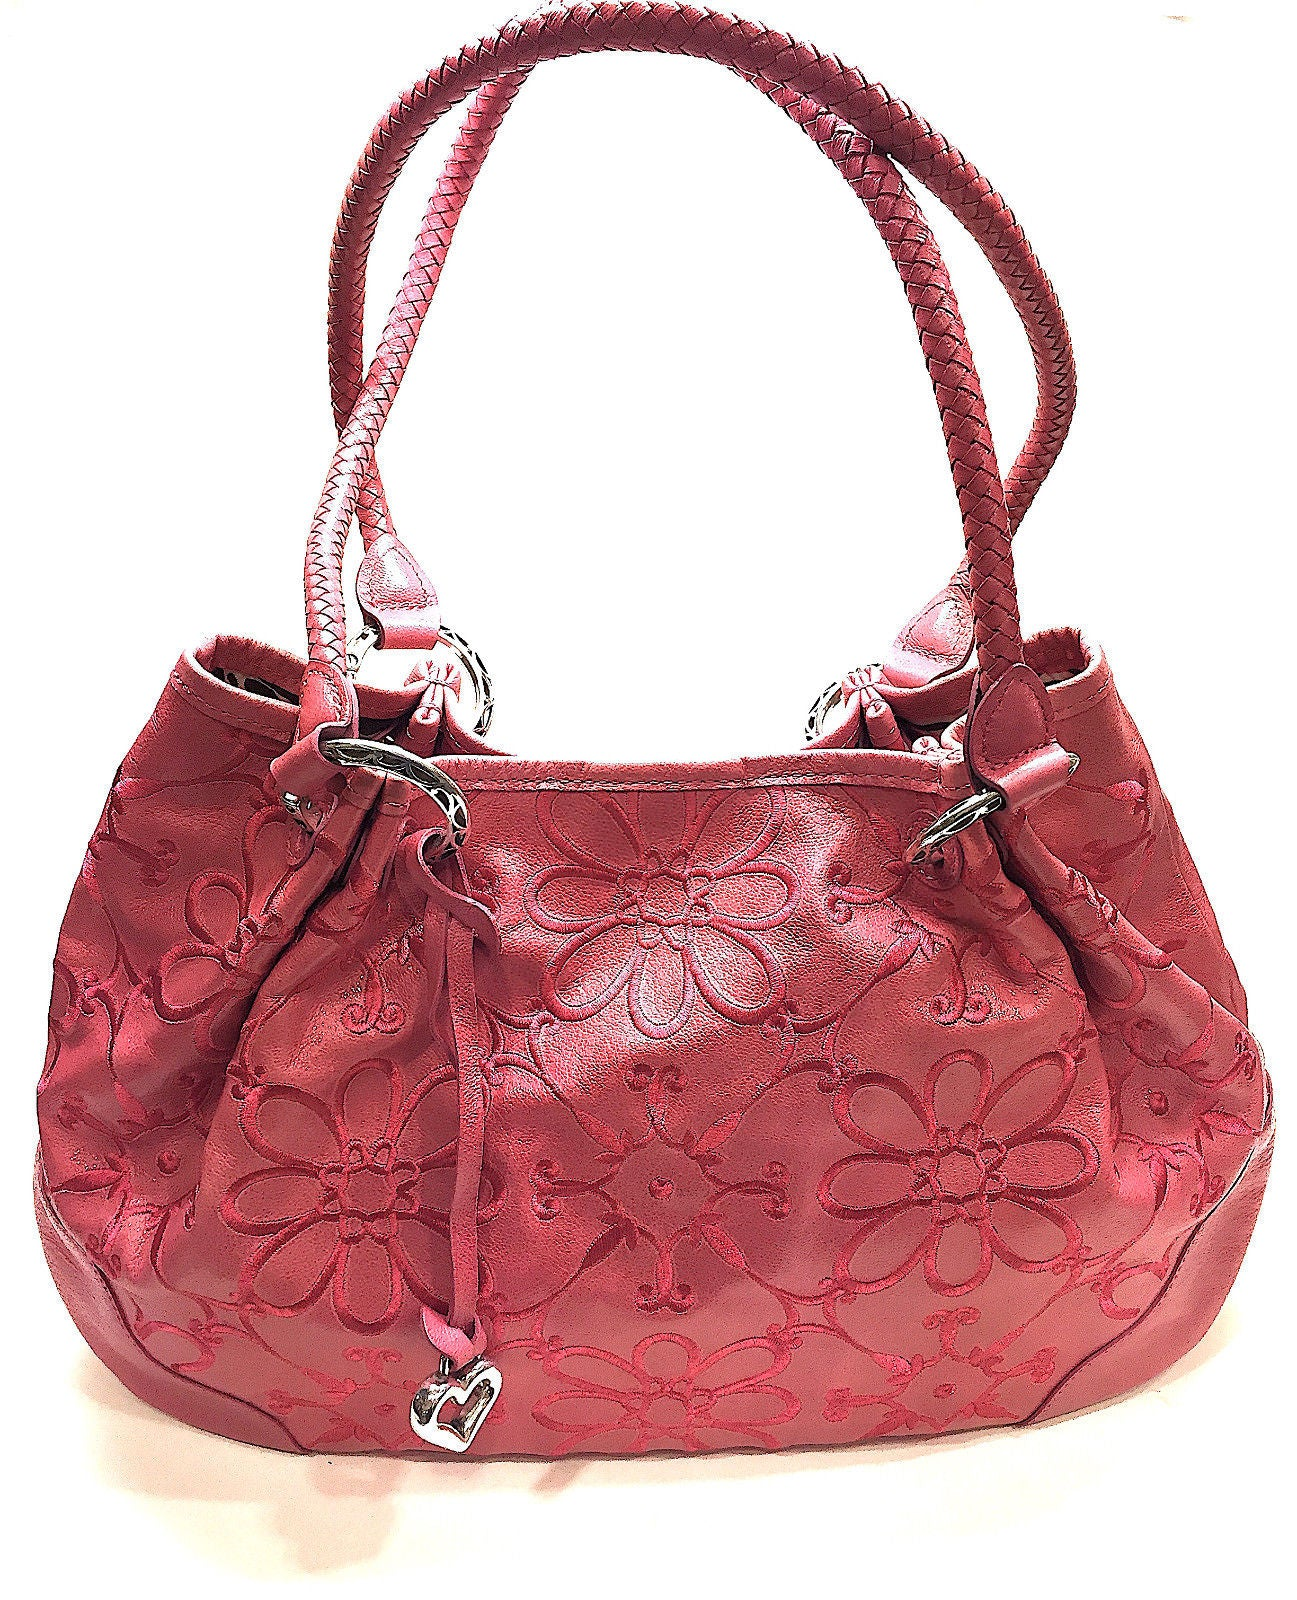 fb608c1eec10 ... Bag. bisbiz.com BRIGHTON Pink Floral-Embroidered Leather Tassel   Heart  Accent Shoulder Hand ...